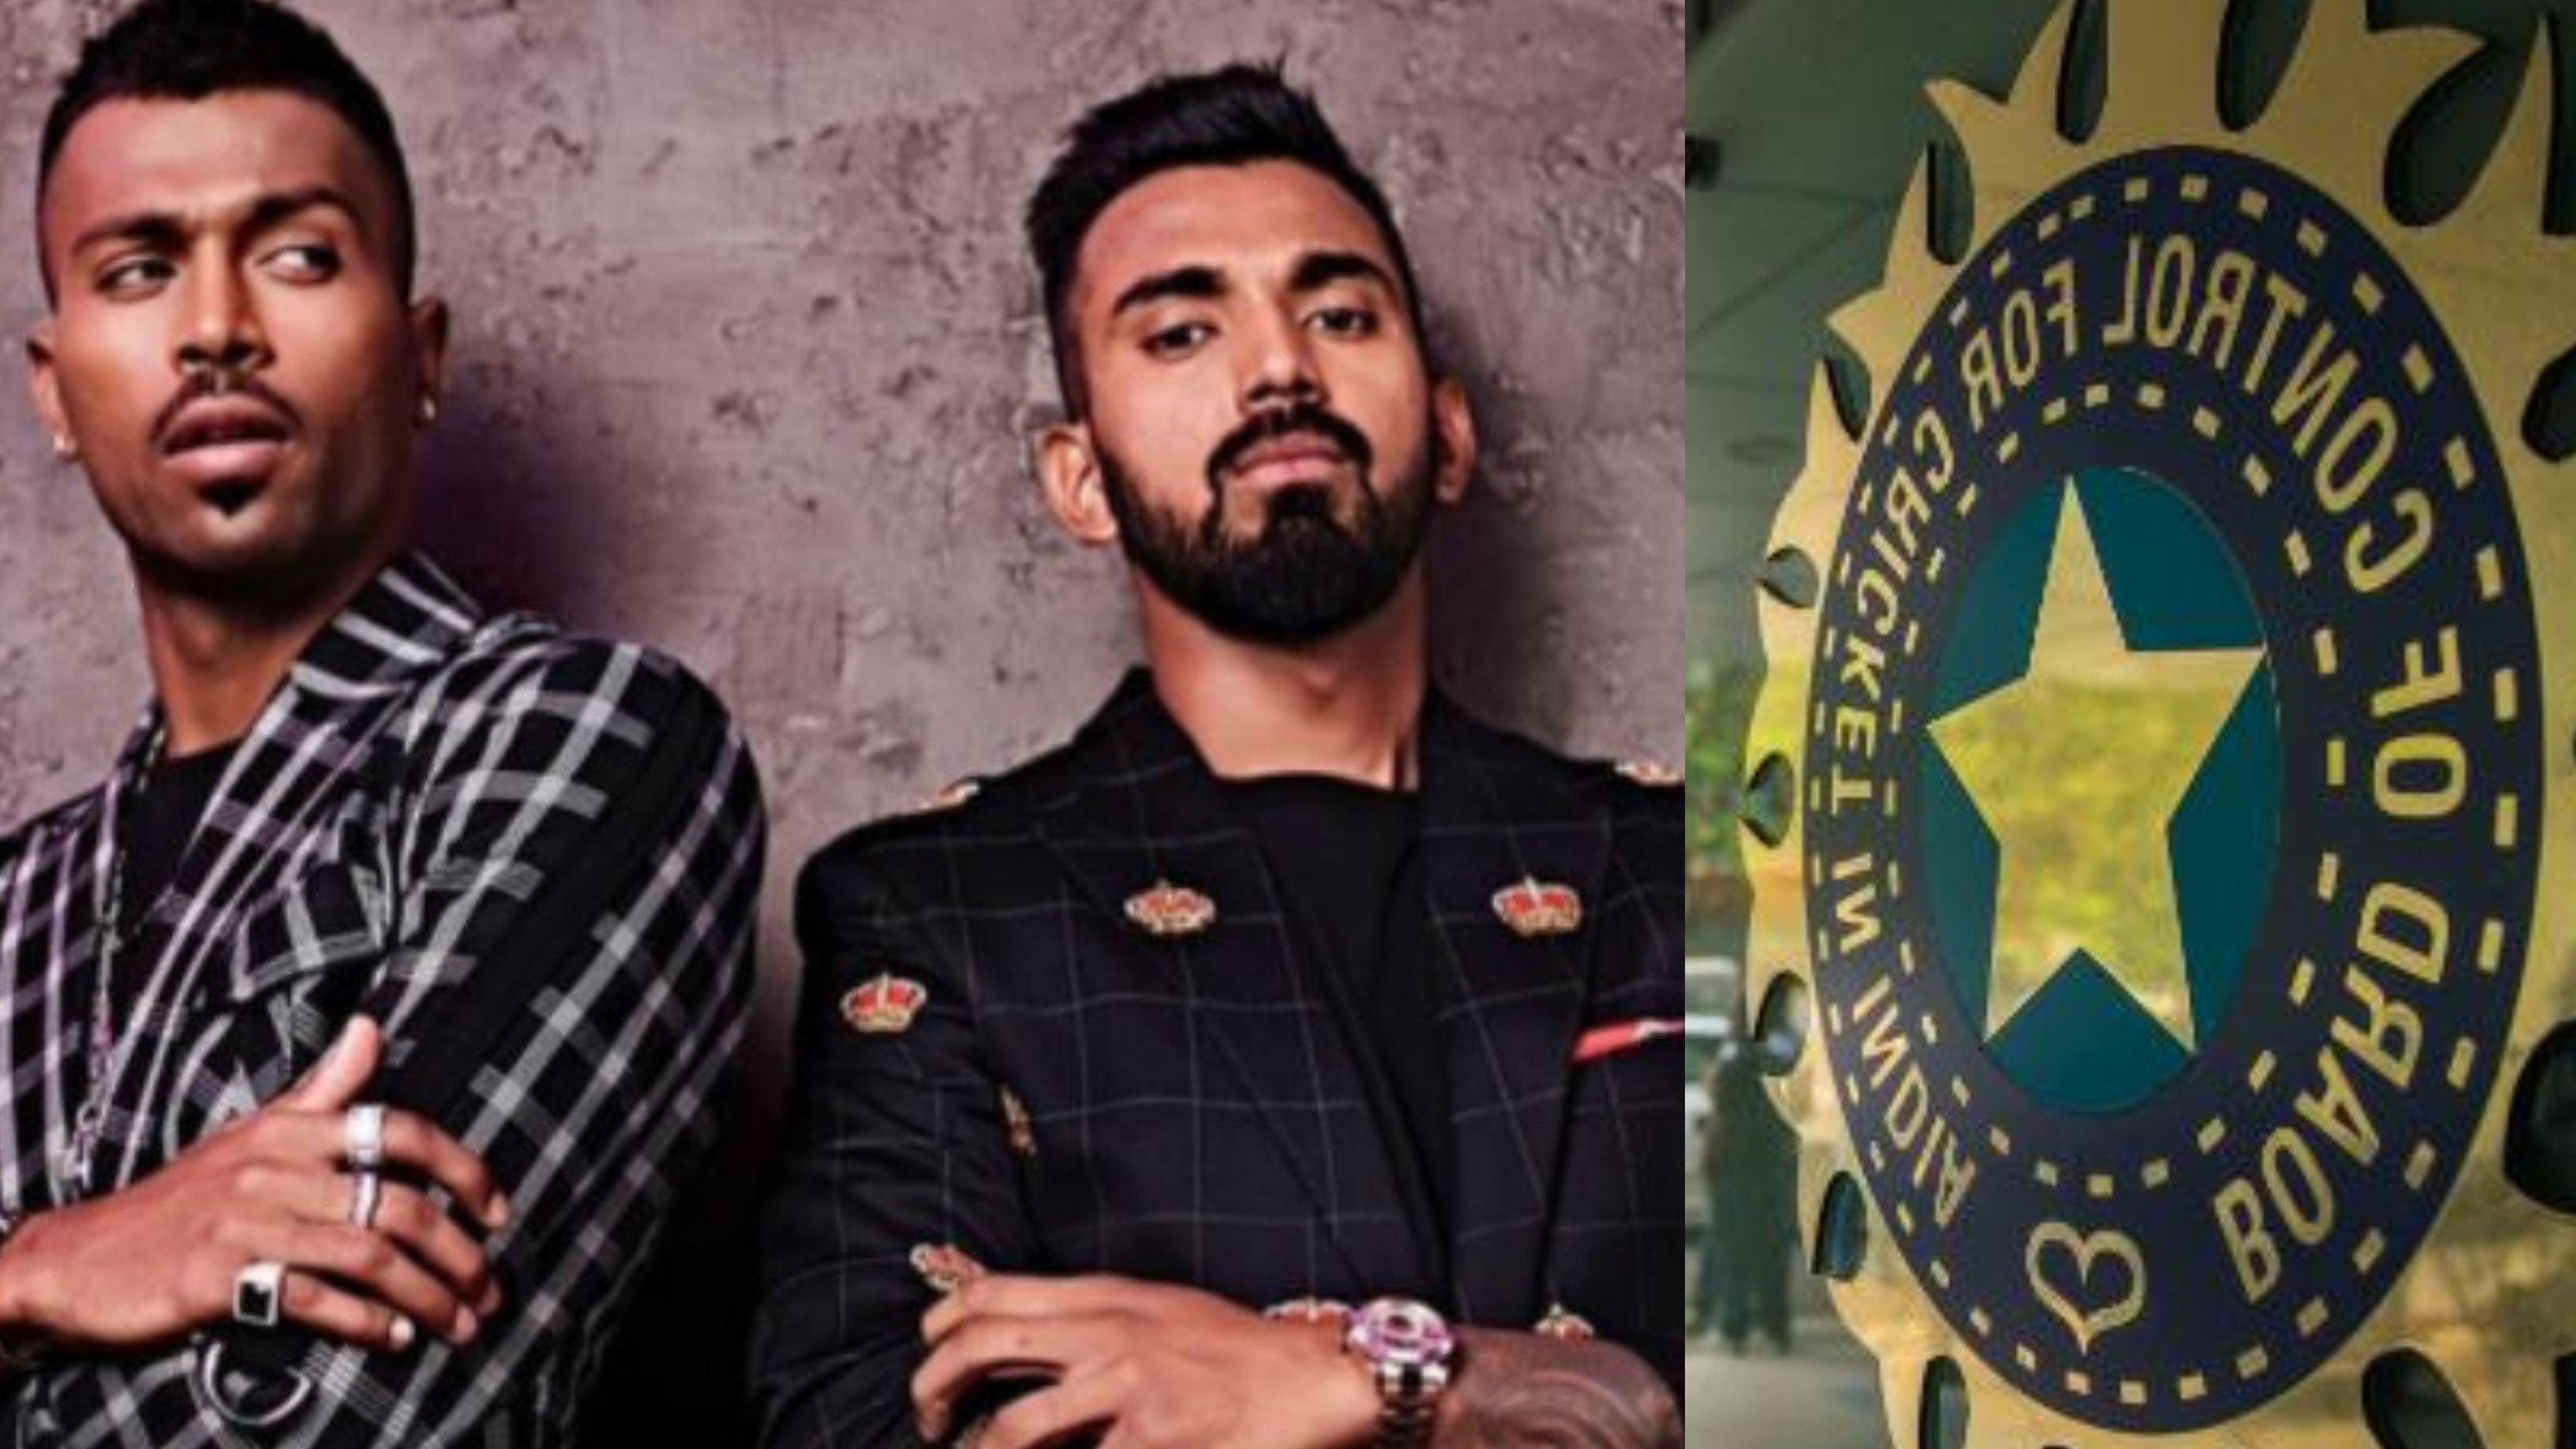 BCCI issues show-cause notice to Hardik Pandya, KL Rahul over controversial remarks on Koffee with Karan